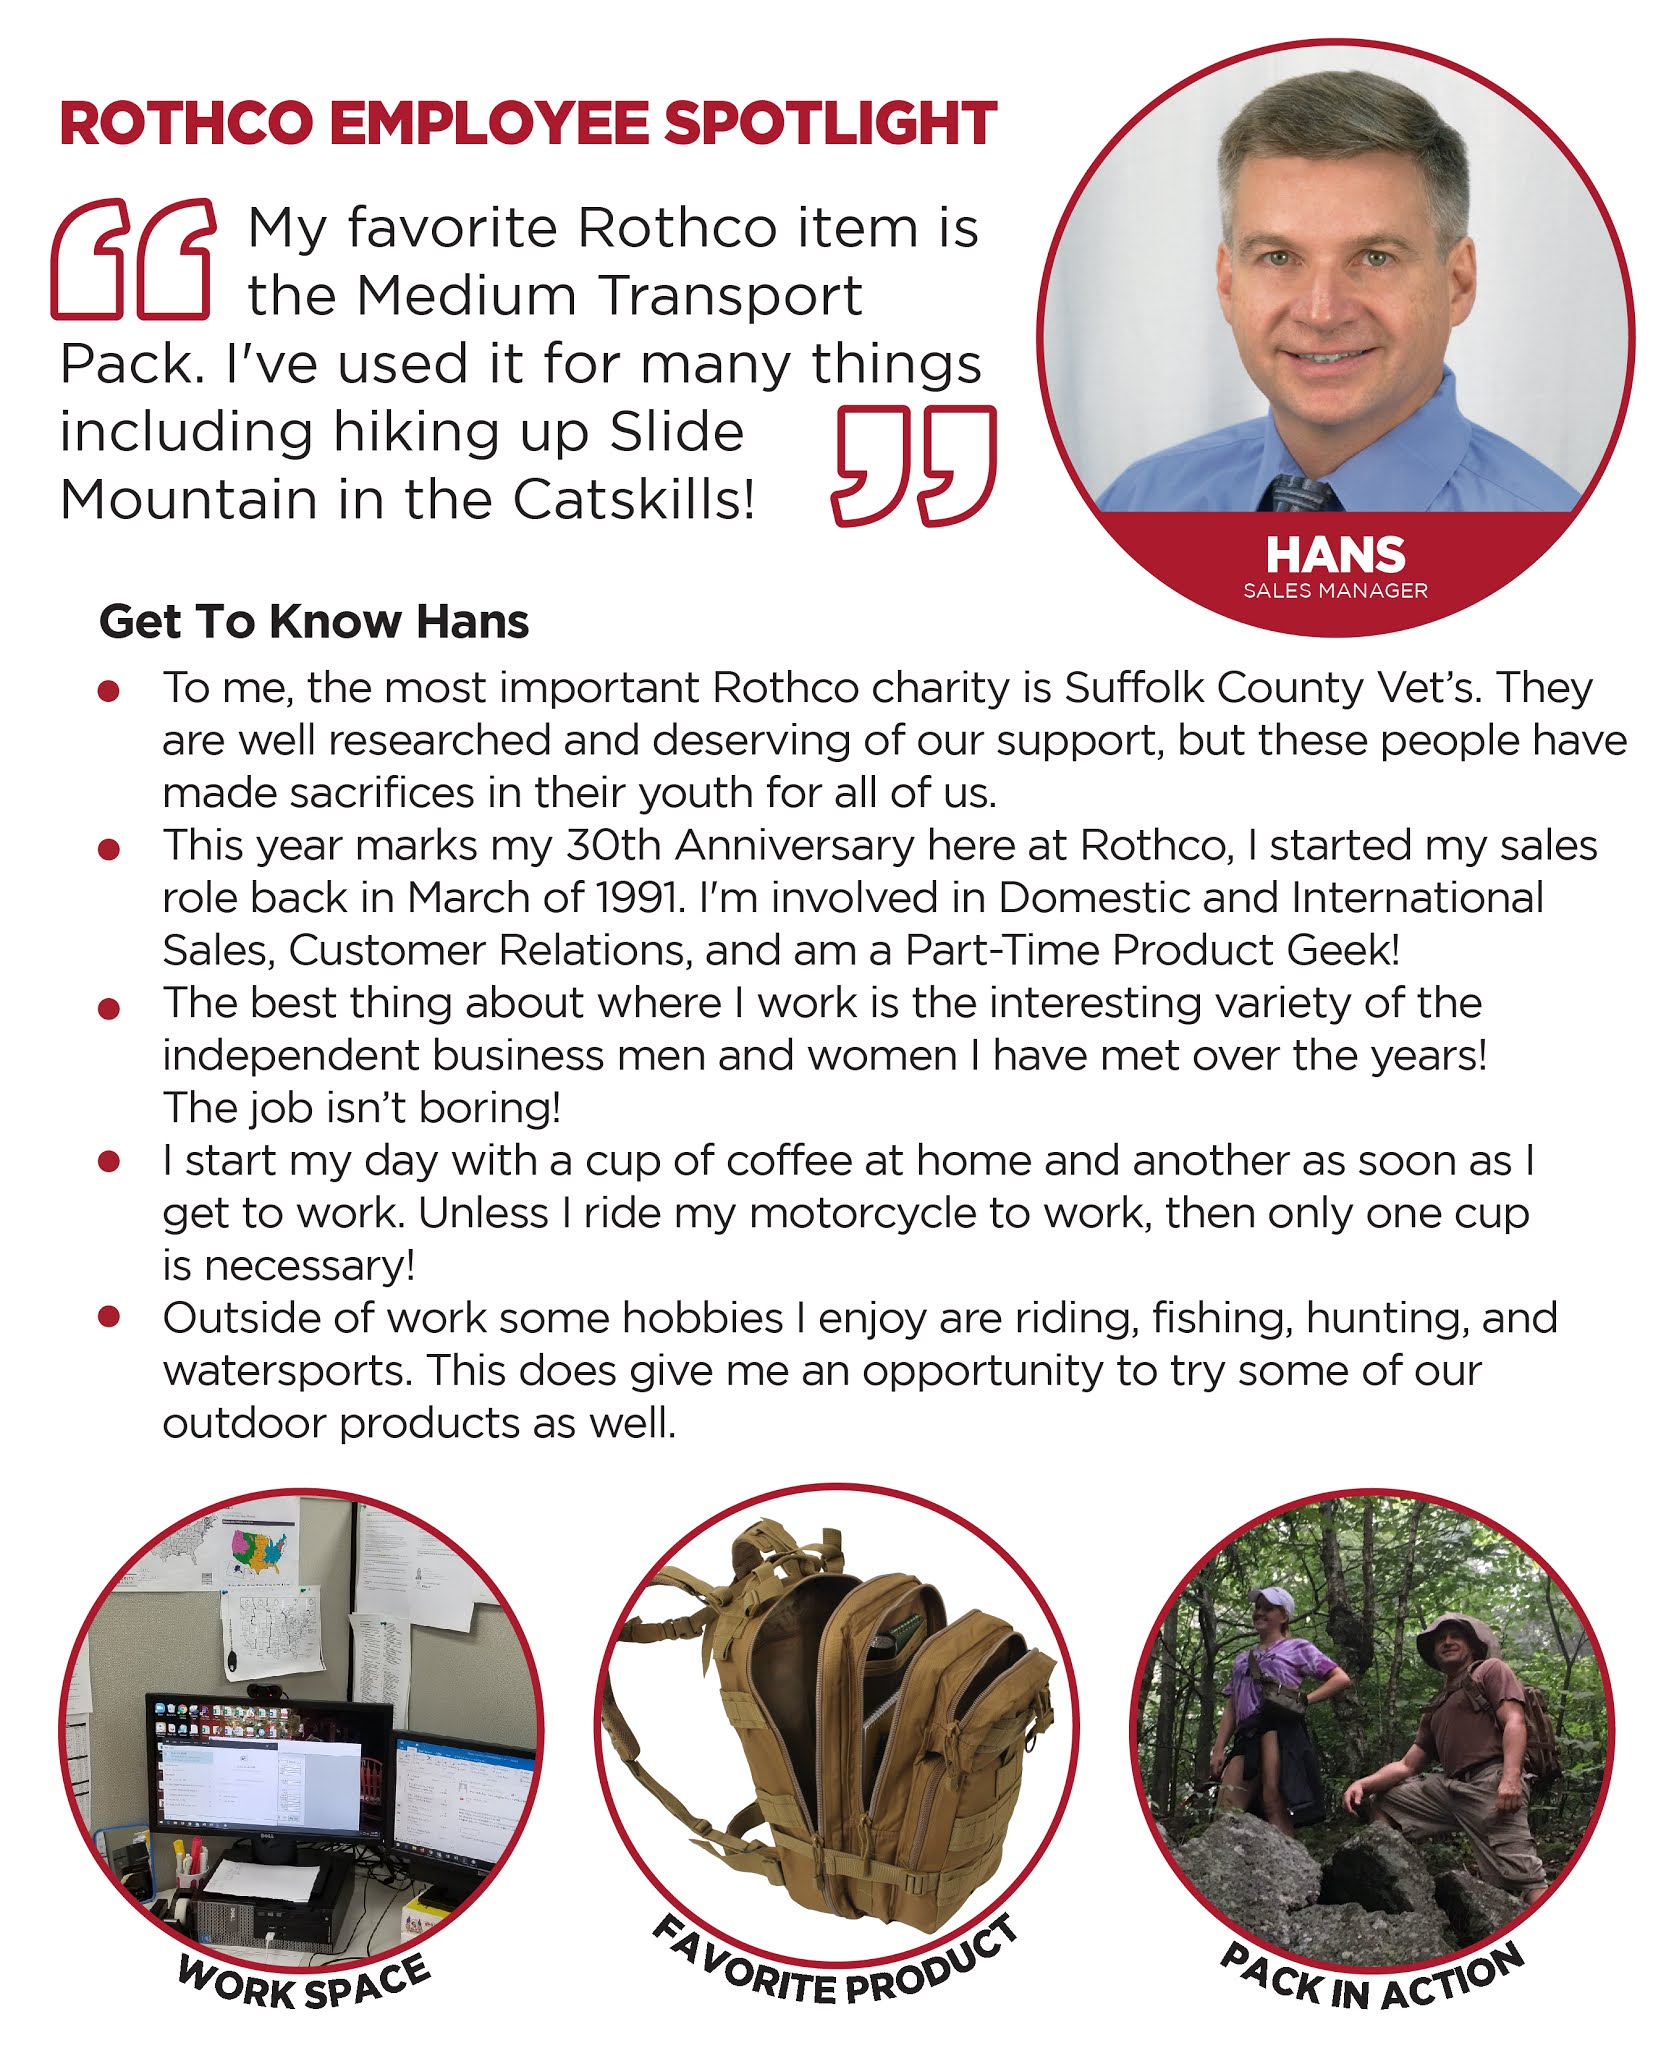 Get To Know Hans Better In Our Latest Employee Spotlight